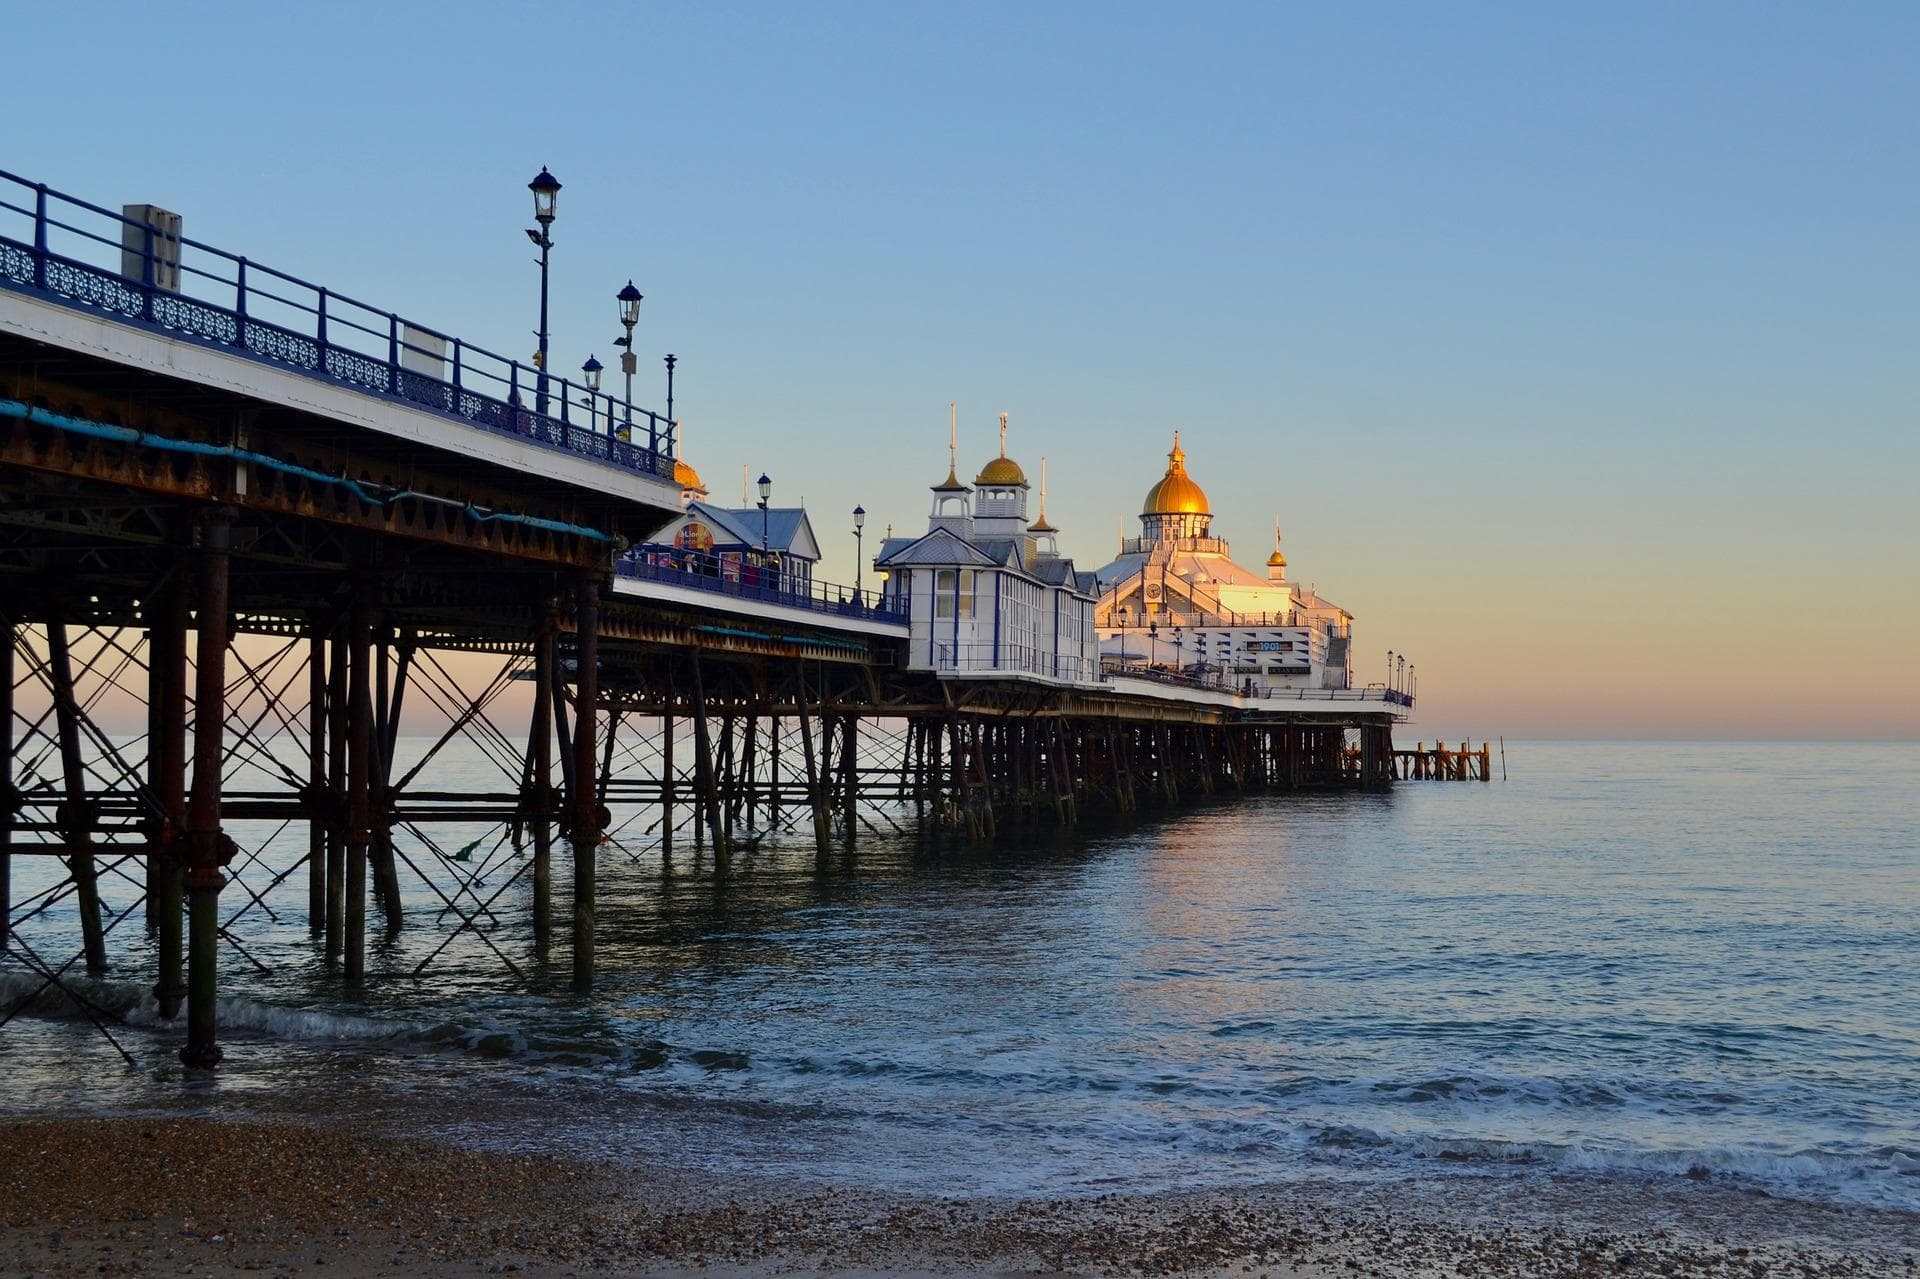 A view of the pier of Eastbourne